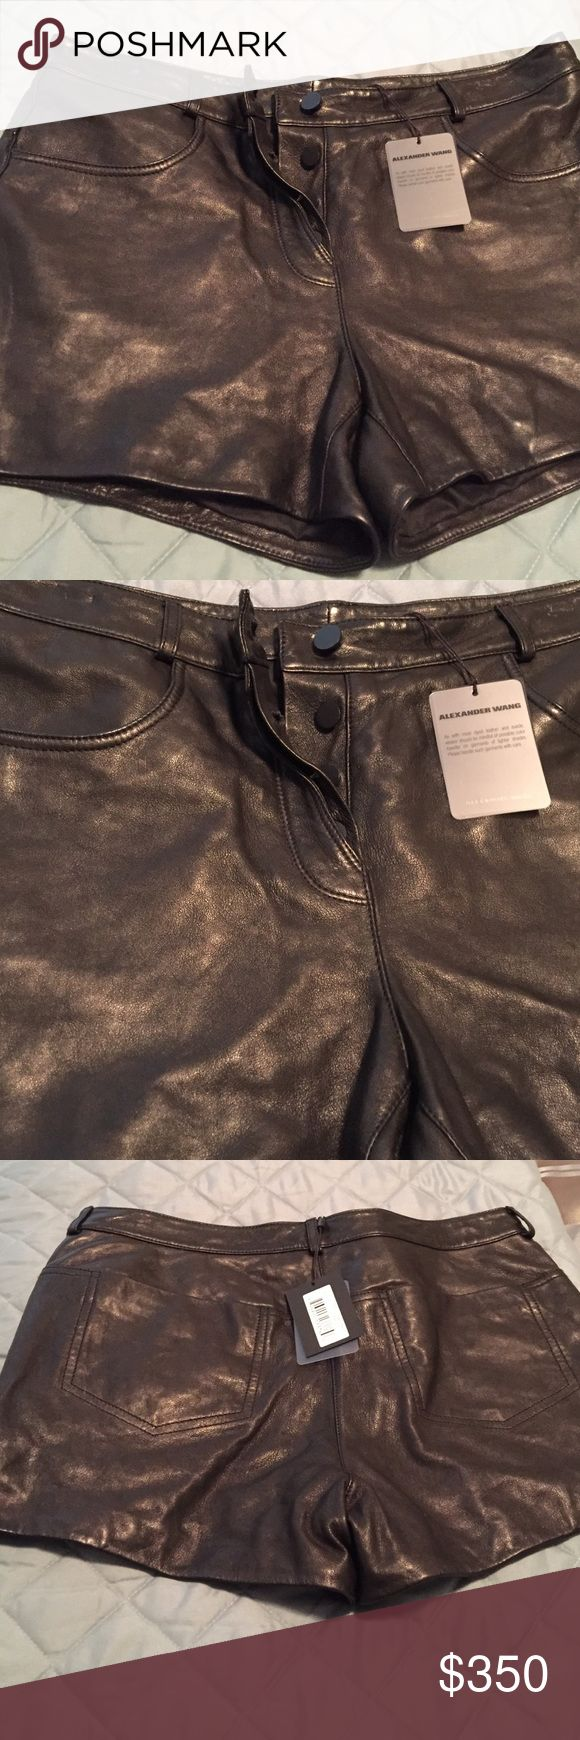 $350 Beautiful supple leather shorts...could pair with a nice sweater,tights and a pair of boots Alexander Wang Shorts